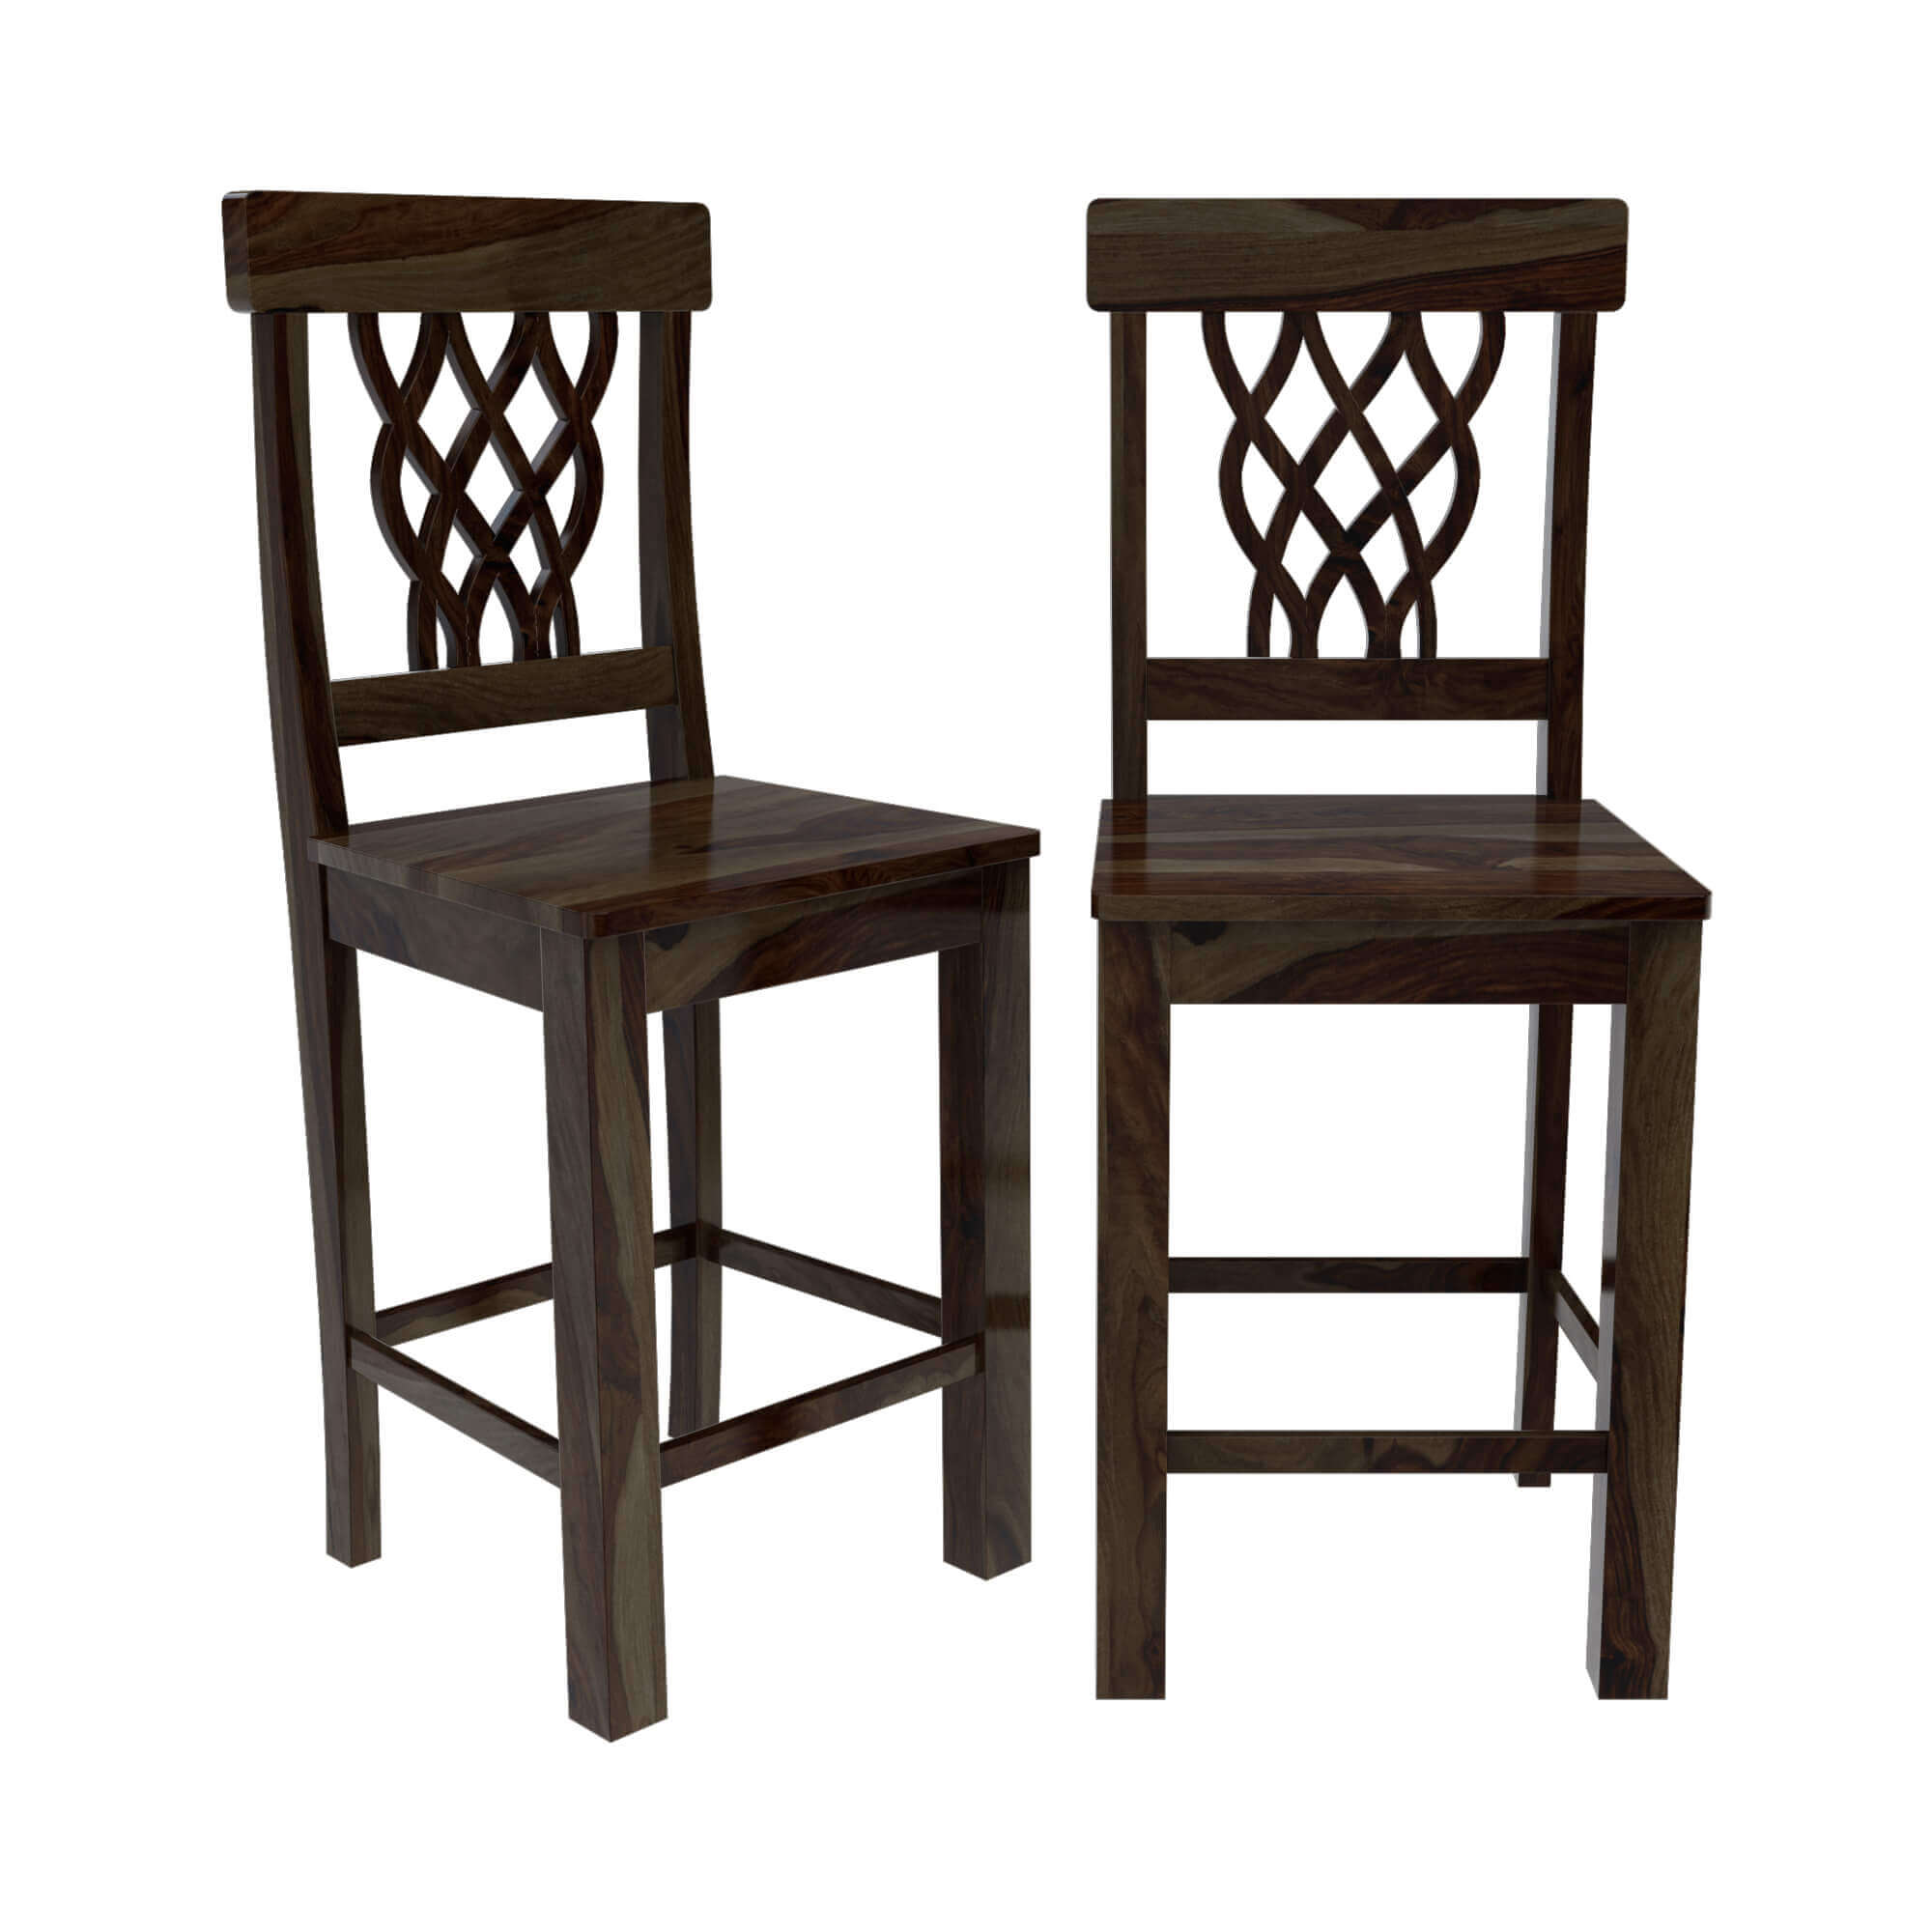 Bar Height Dining Chairs Portland Pineapple Back Counter Height Dining Chair